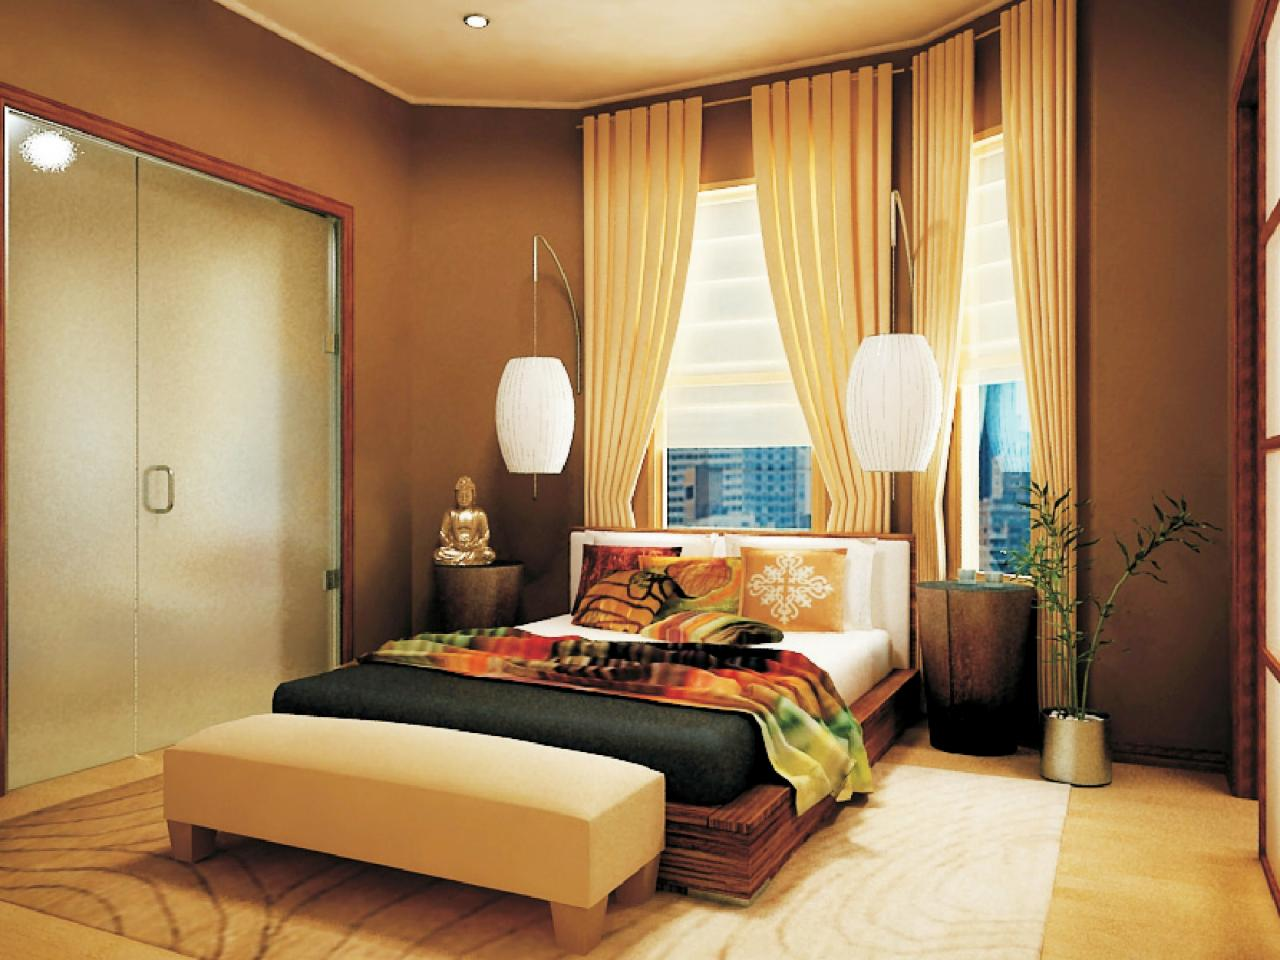 Asian design ideas interior design styles and color for Bedroom decor styles